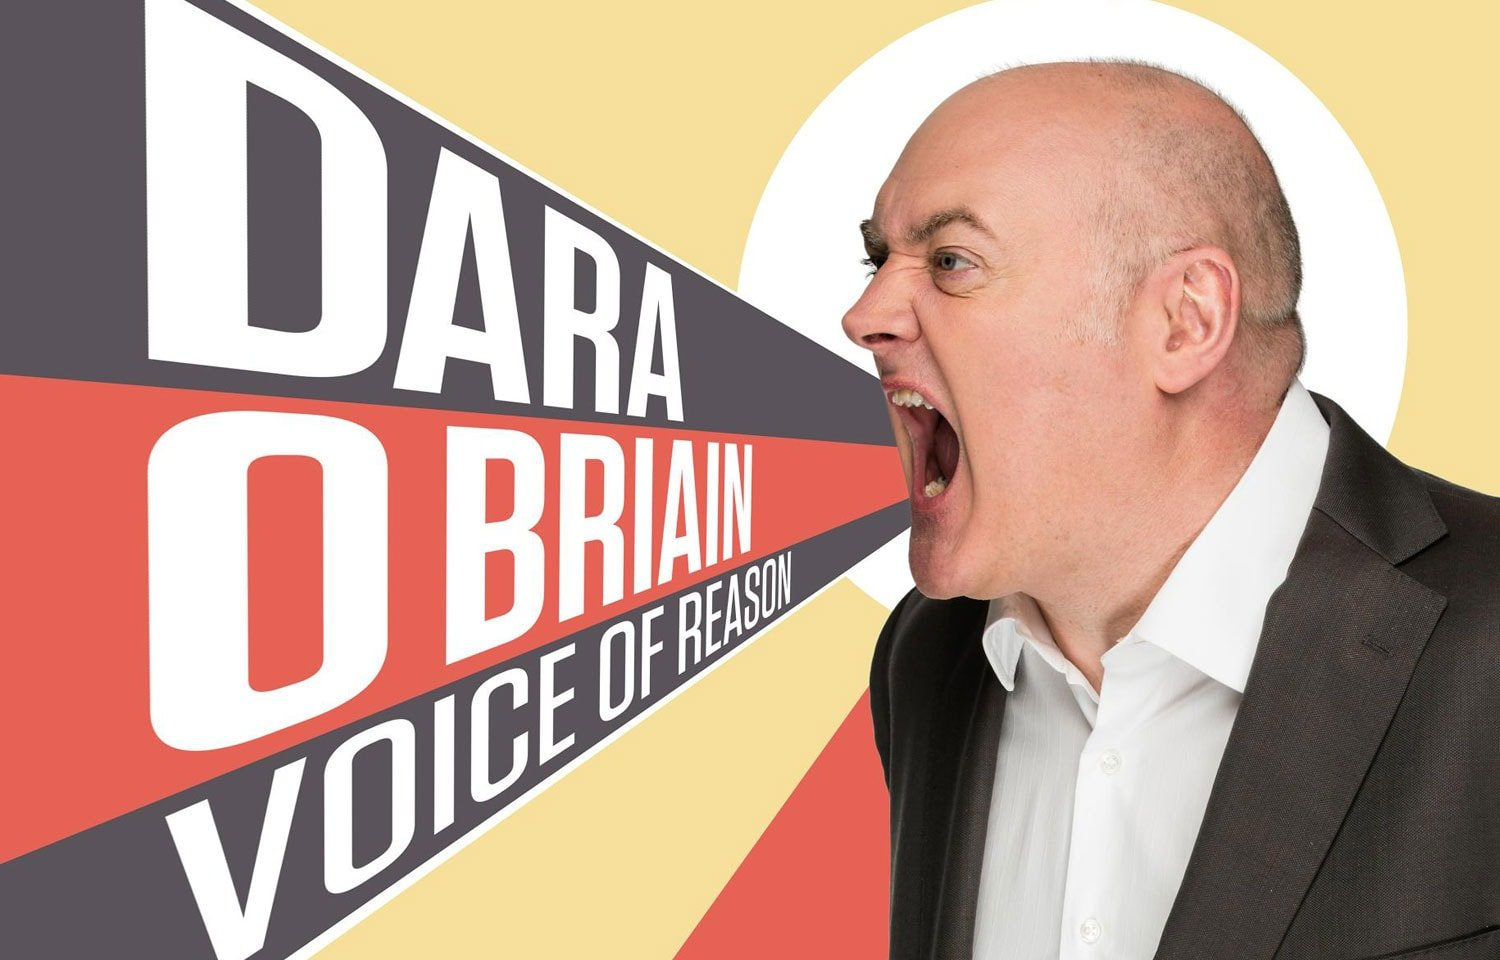 DARA O BRIAIN ANNOUNCES DEBUT US DATES FOR VOICE OF REASON